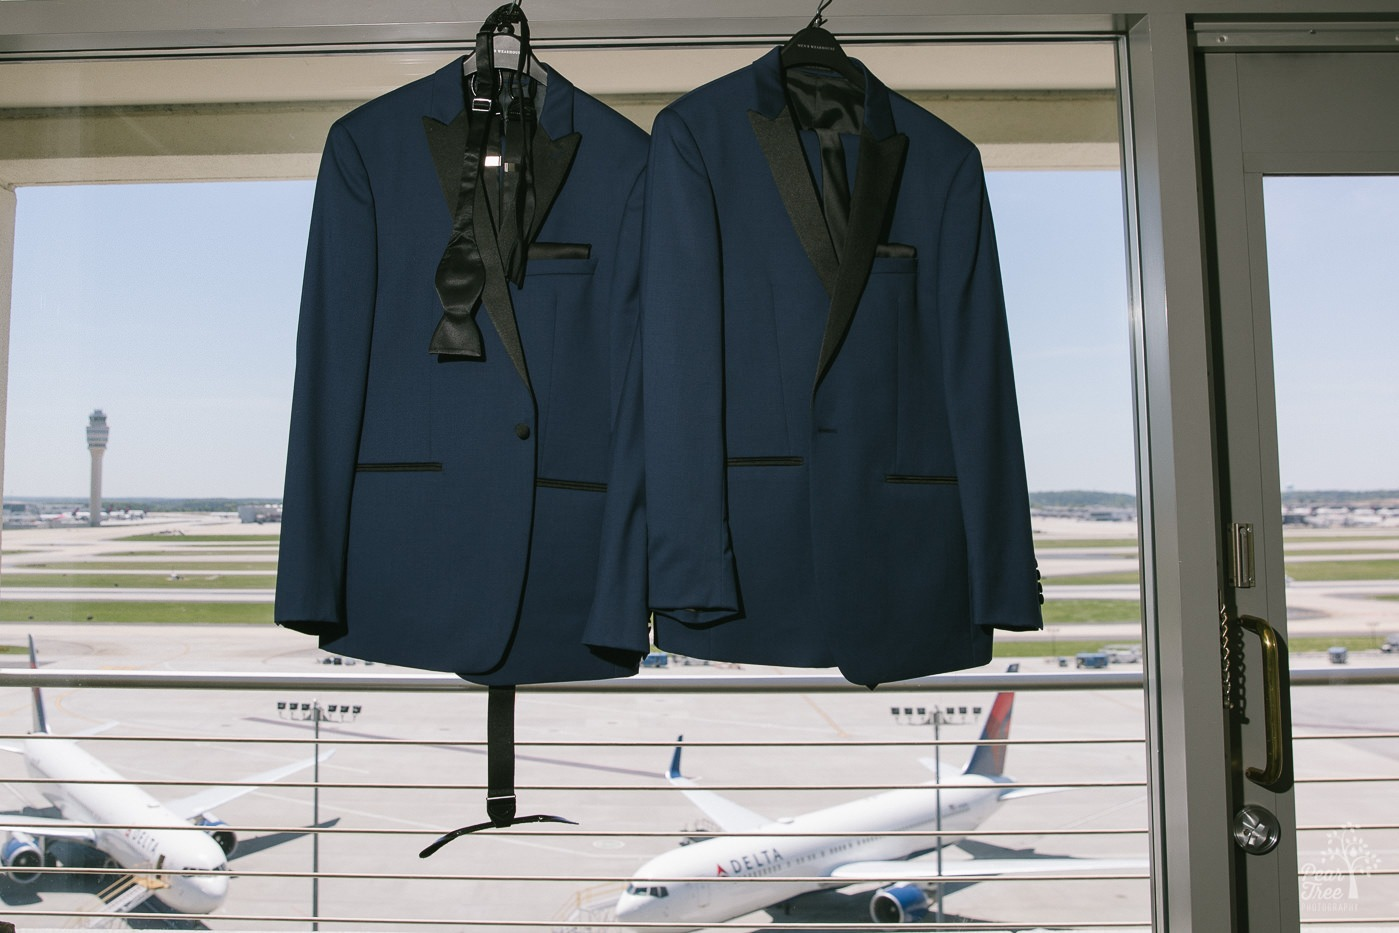 Two tuxes hanging in Atlanta Renaissance Concourse penthouse window overlooking Delta jets at Hartsfield-Jackson International Airport.